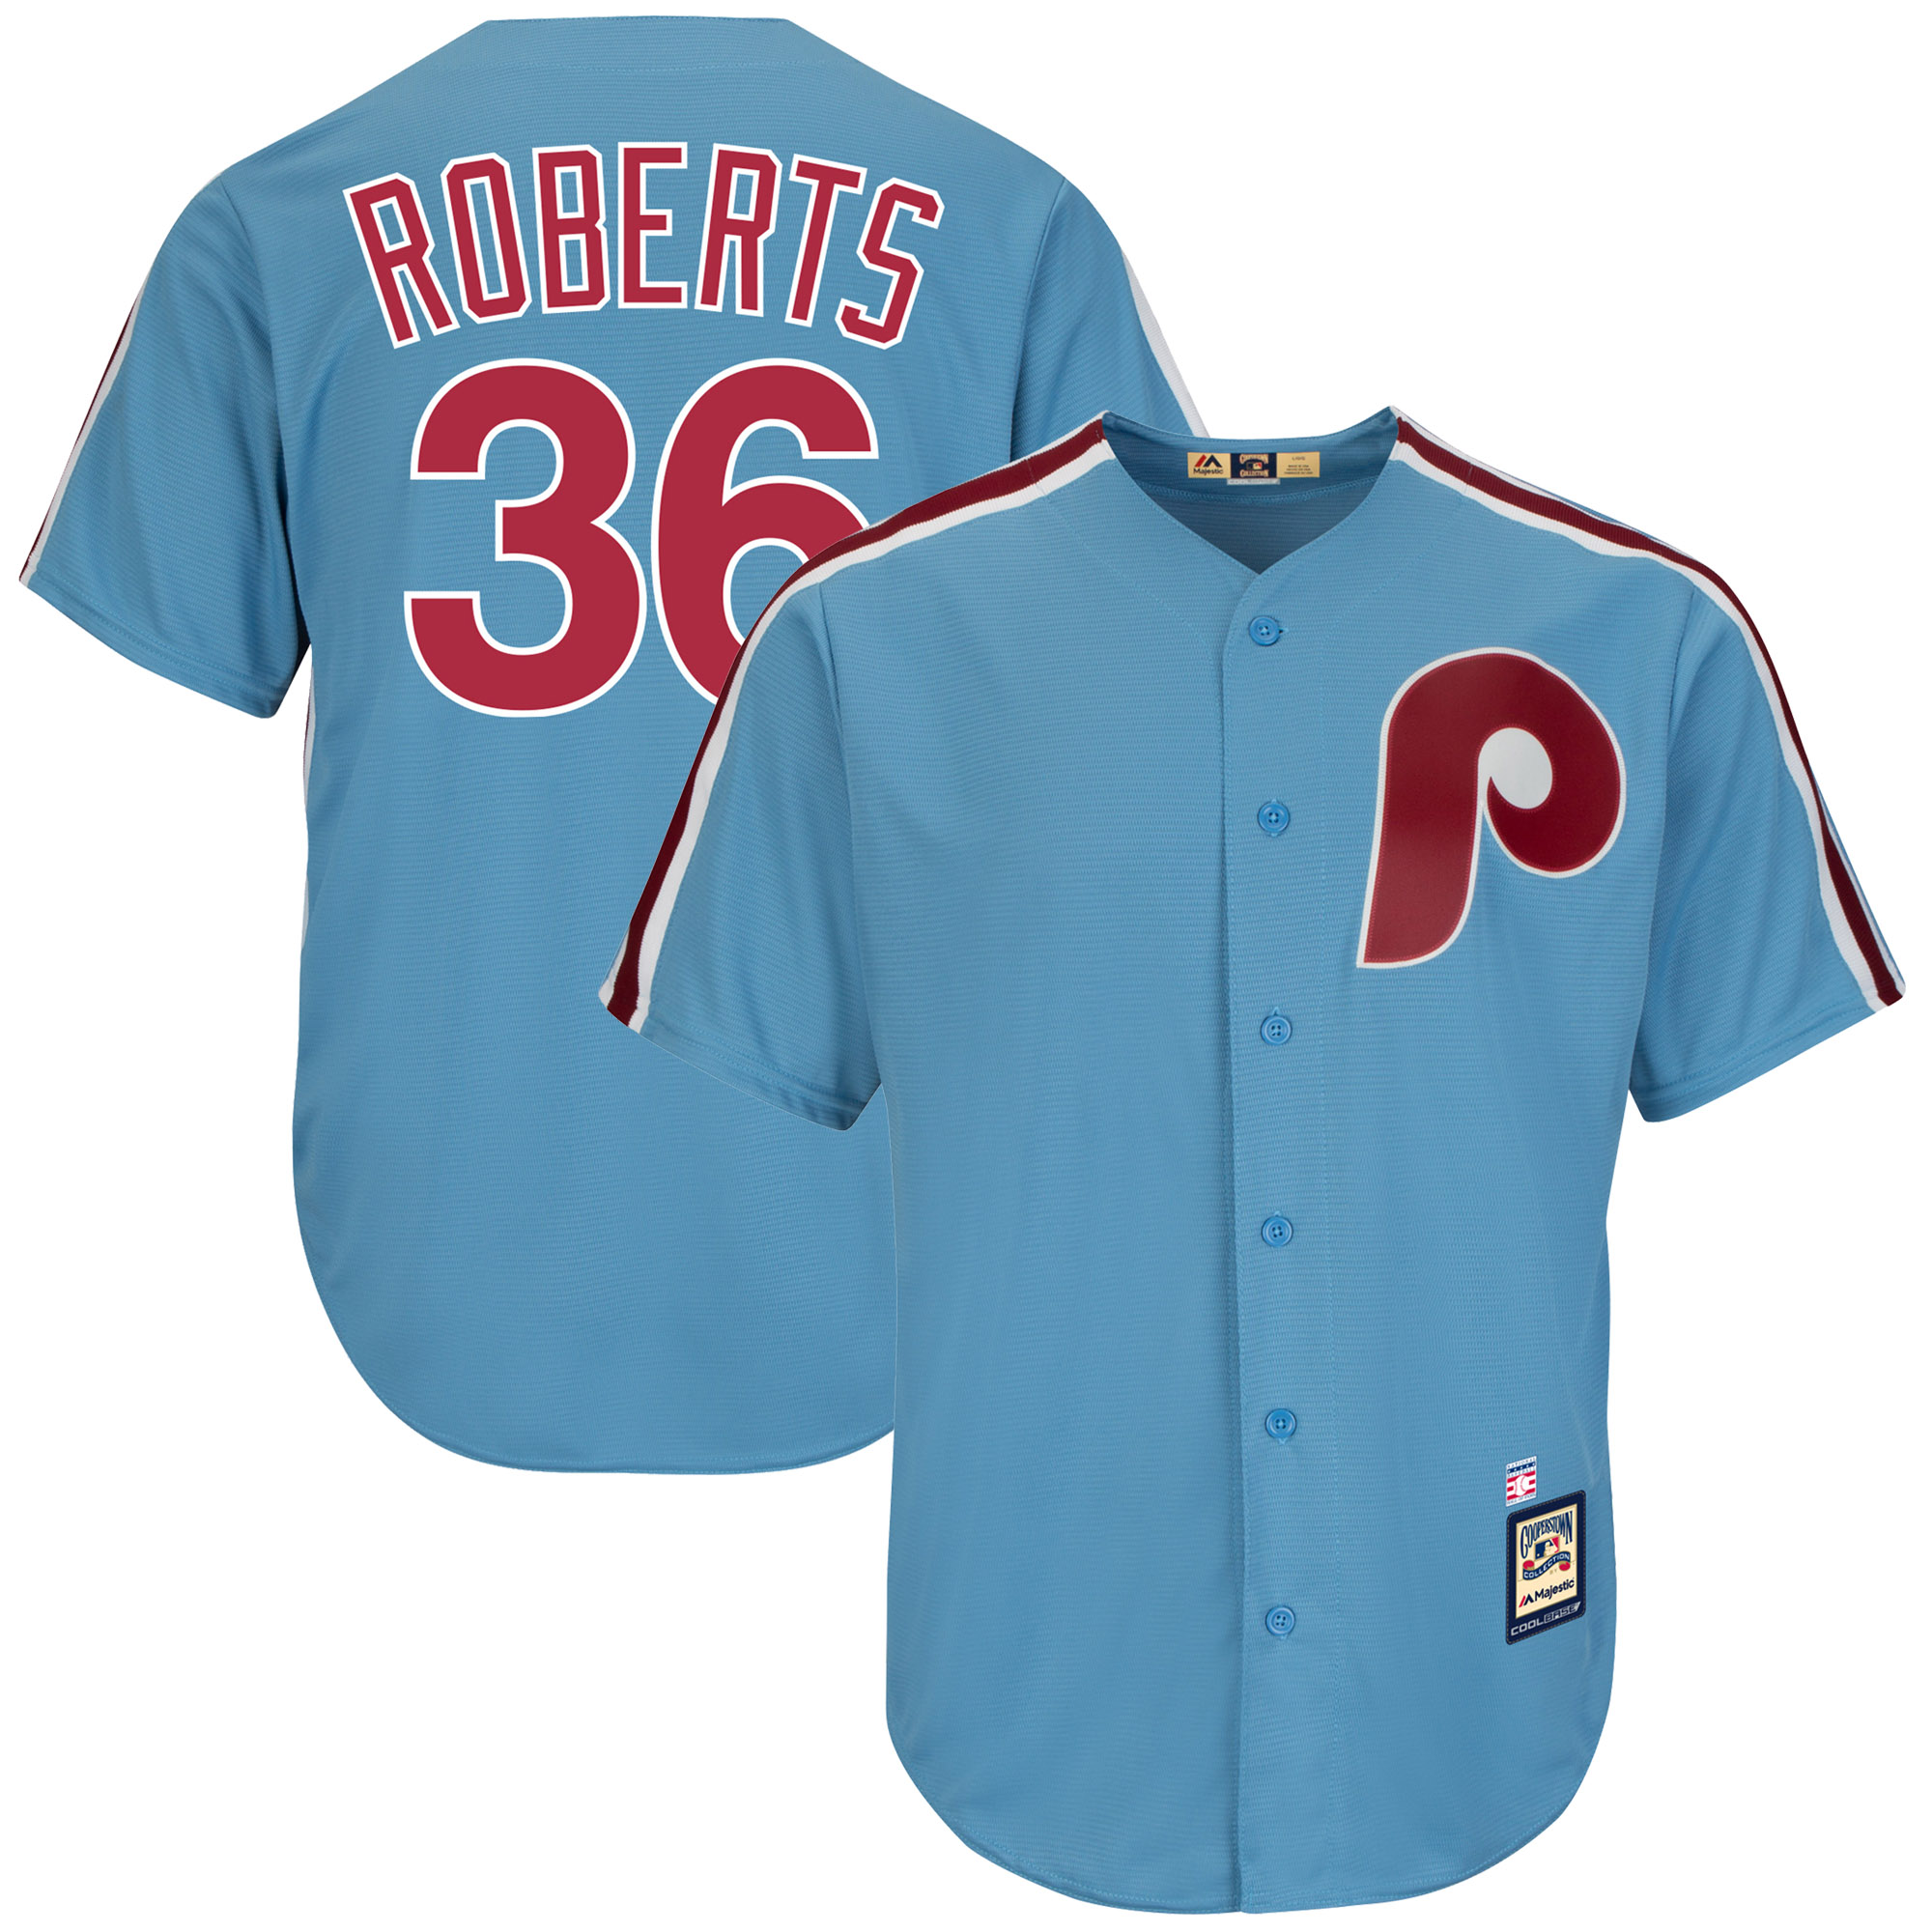 Robin Roberts Philadelphia Phillies Majestic Cooperstown Collection Cool Base Player Jersey - Light Blue